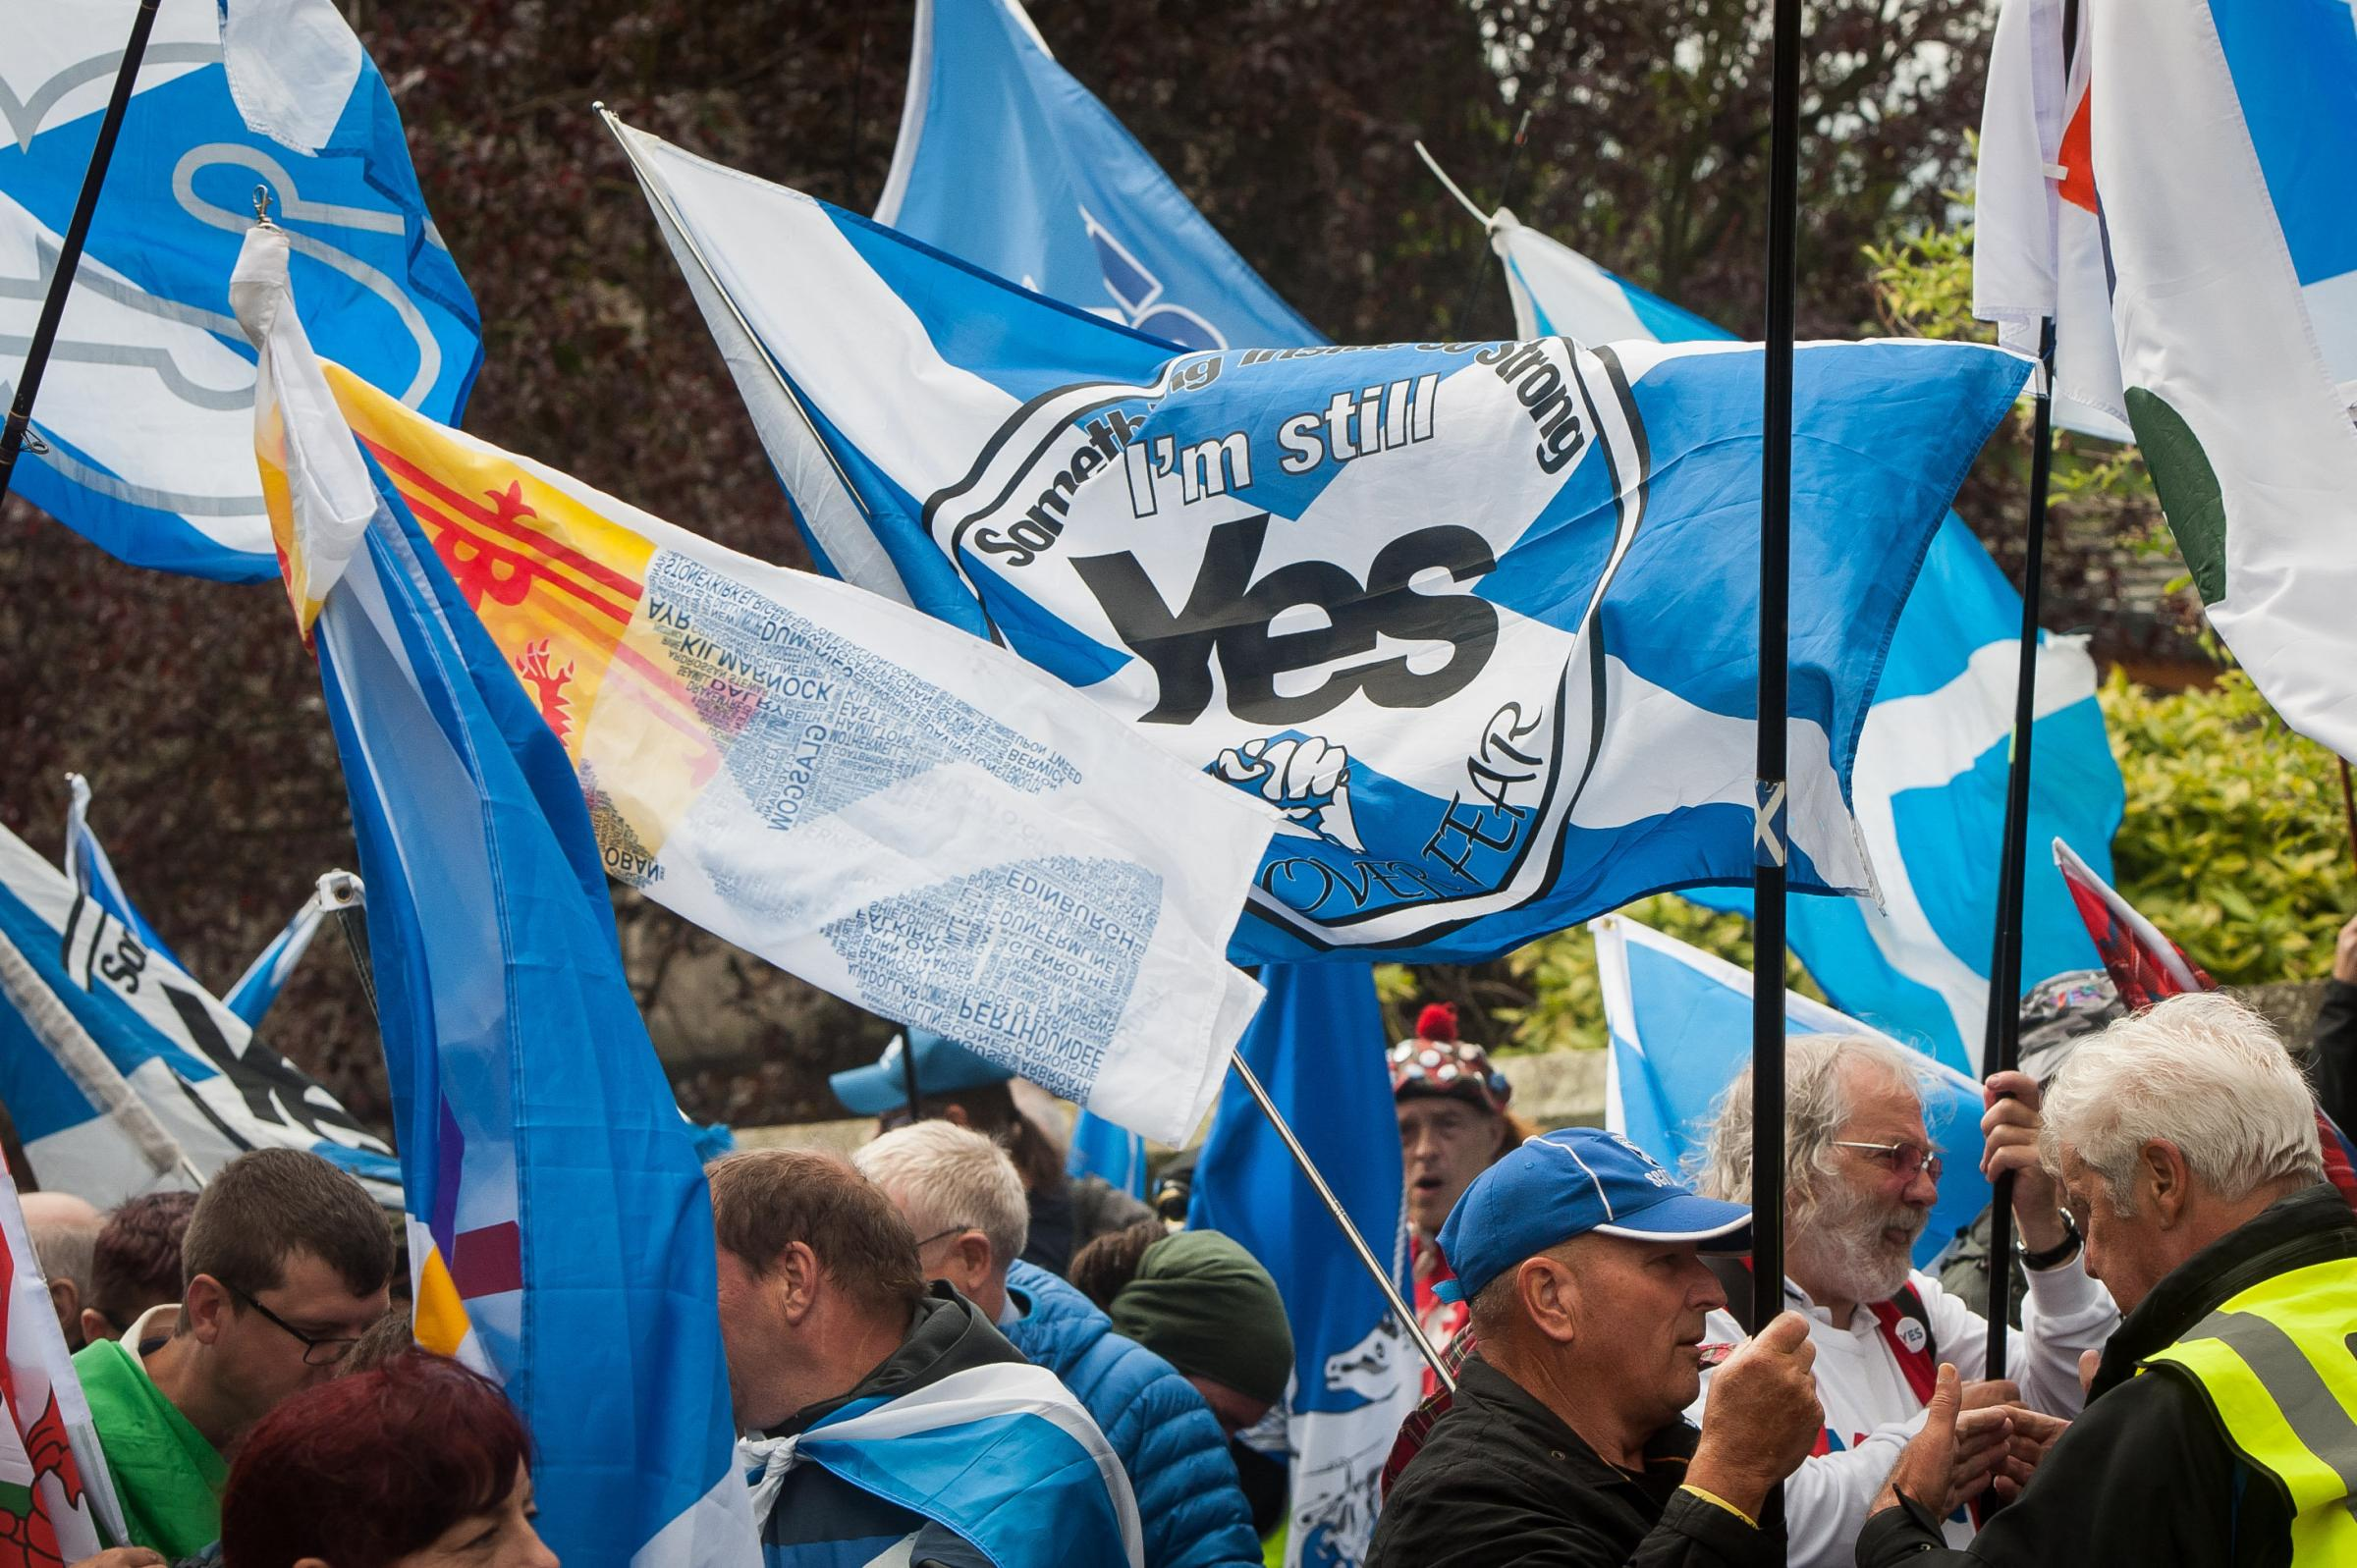 Odds 'now clearly in favour' of Scottish independence, says bookmaker